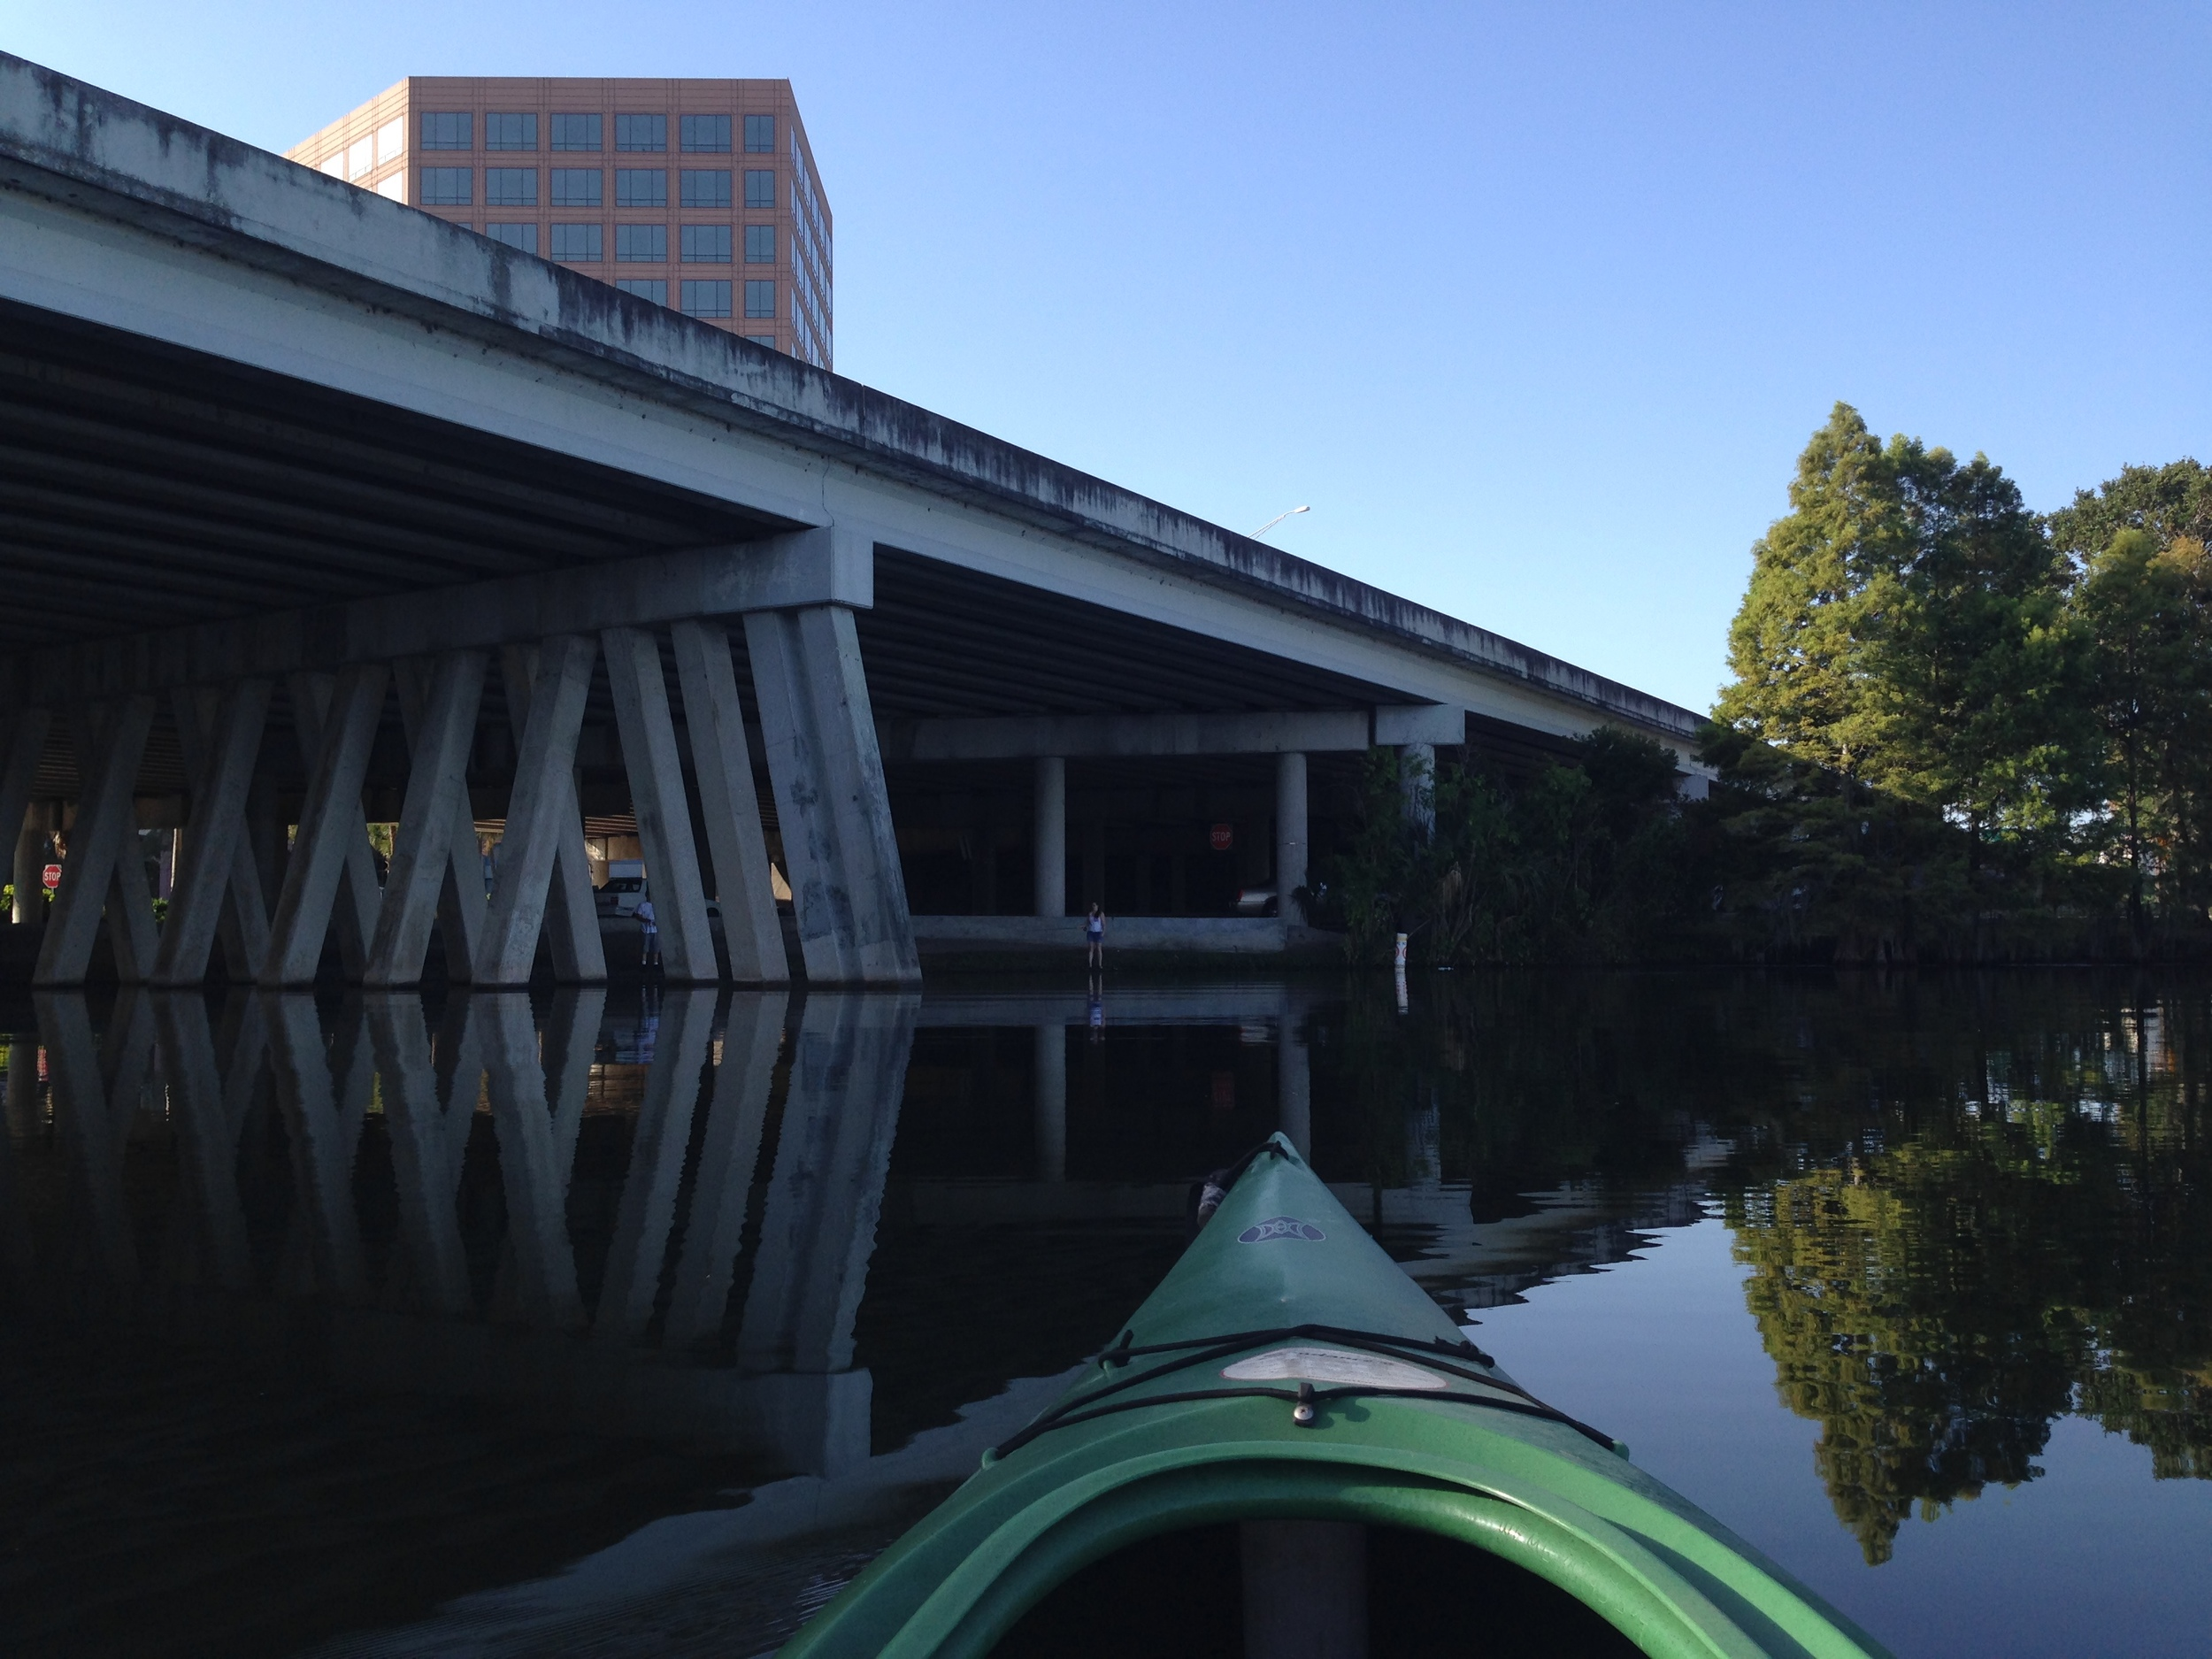 The Ivanhoe off-ramp creates a visual and physical barrier to Downtown Orlando.